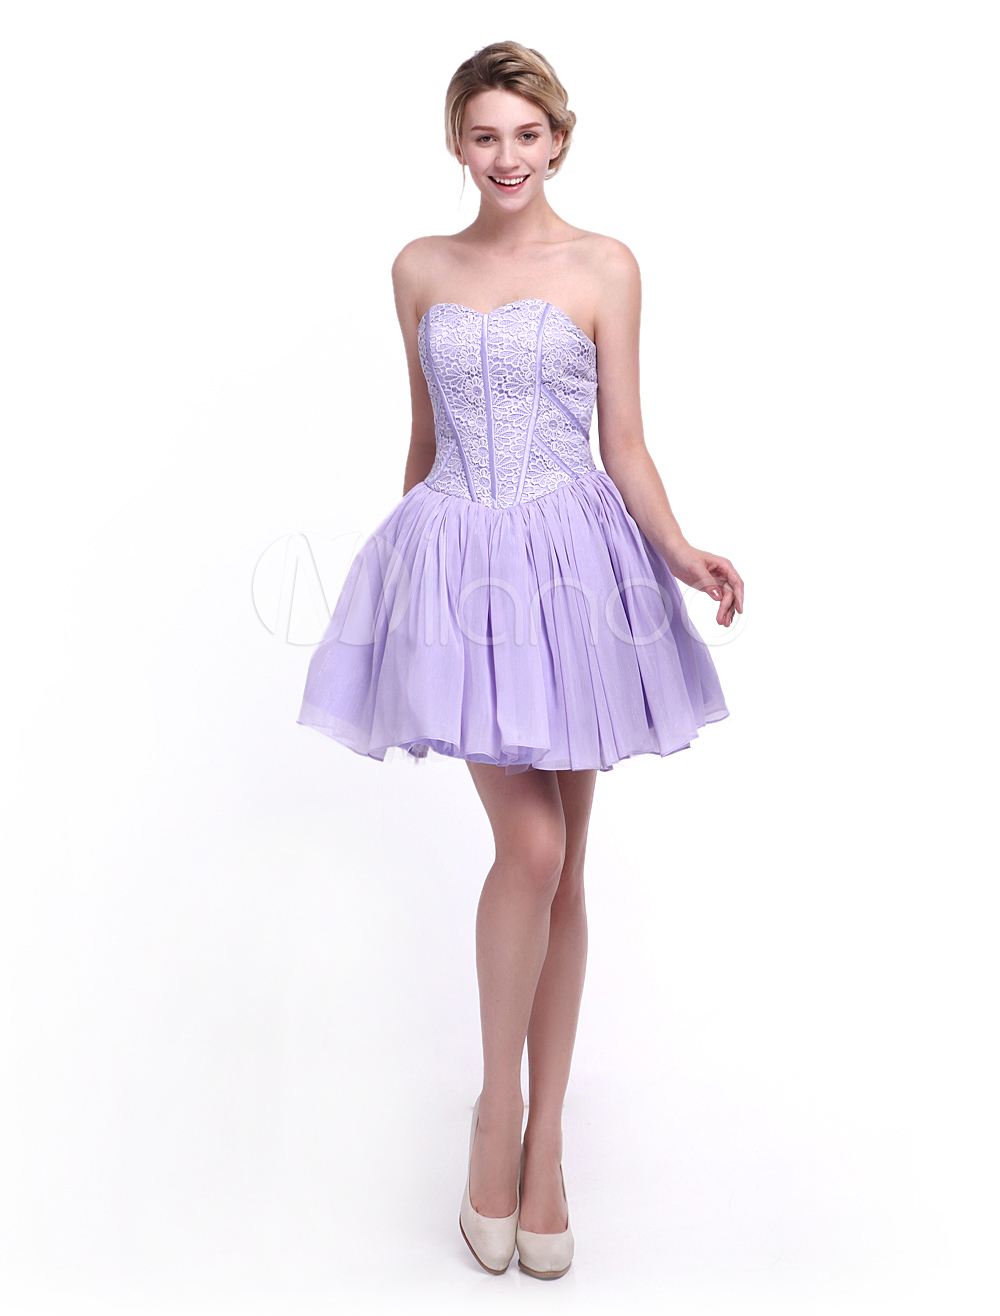 Lavender A-line Short Lace Bridesmaid Dress with Pretty Sweetheart Neck Milanoo